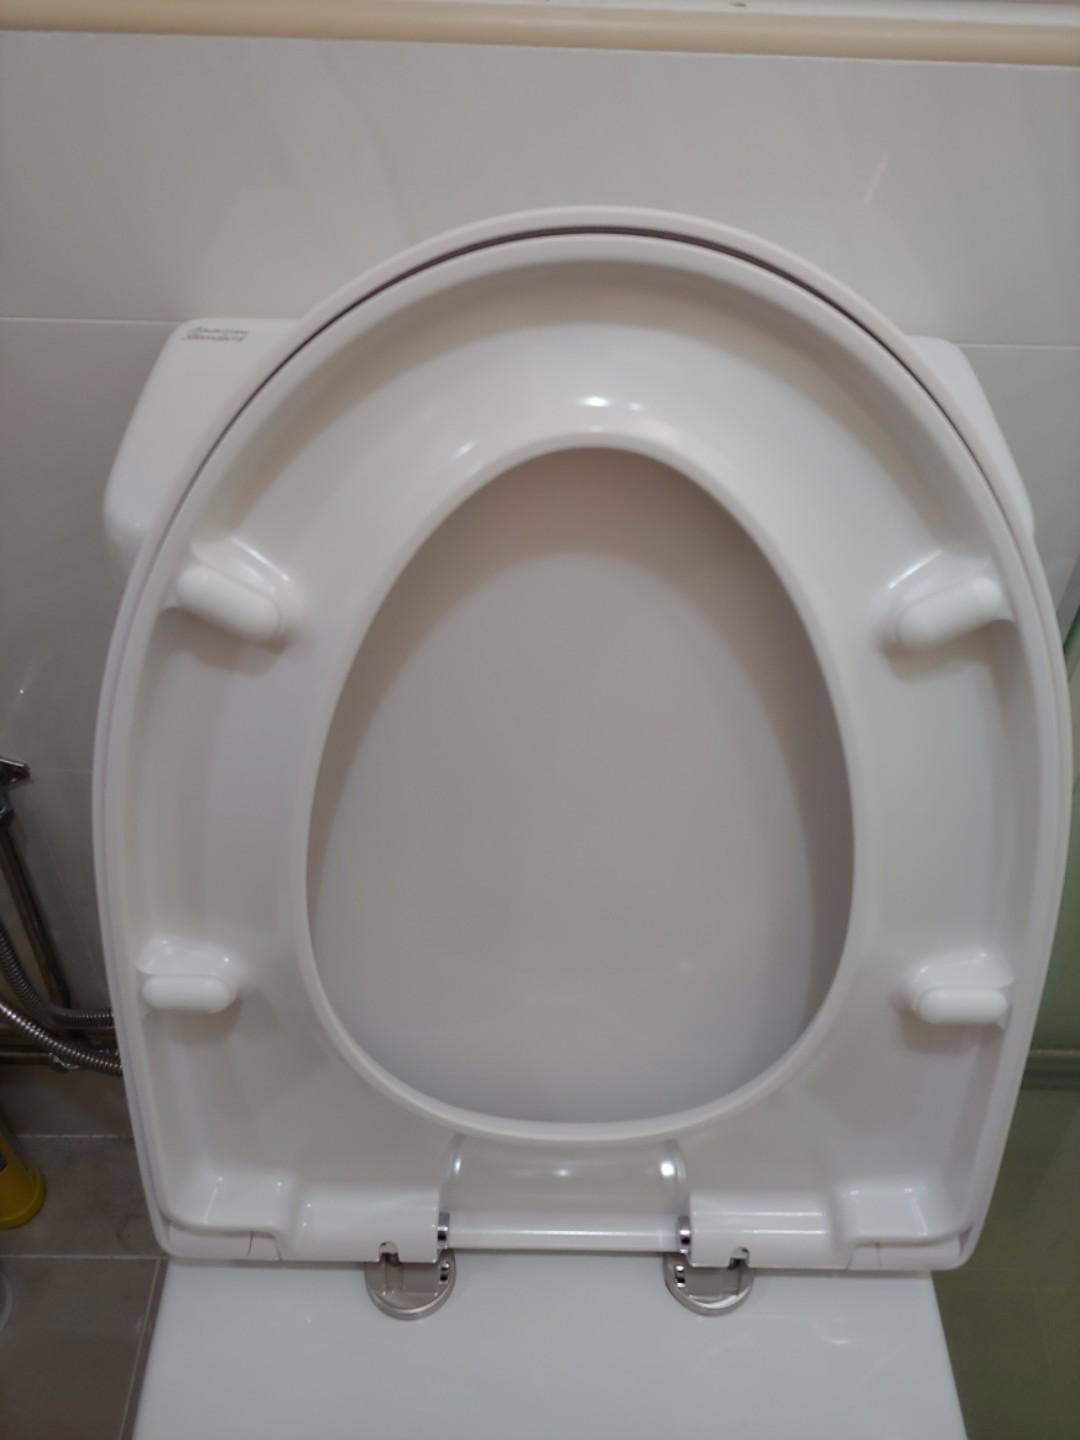 Astonishing Used Toilet Seat Cover Home Appliances Cleaning Alphanode Cool Chair Designs And Ideas Alphanodeonline